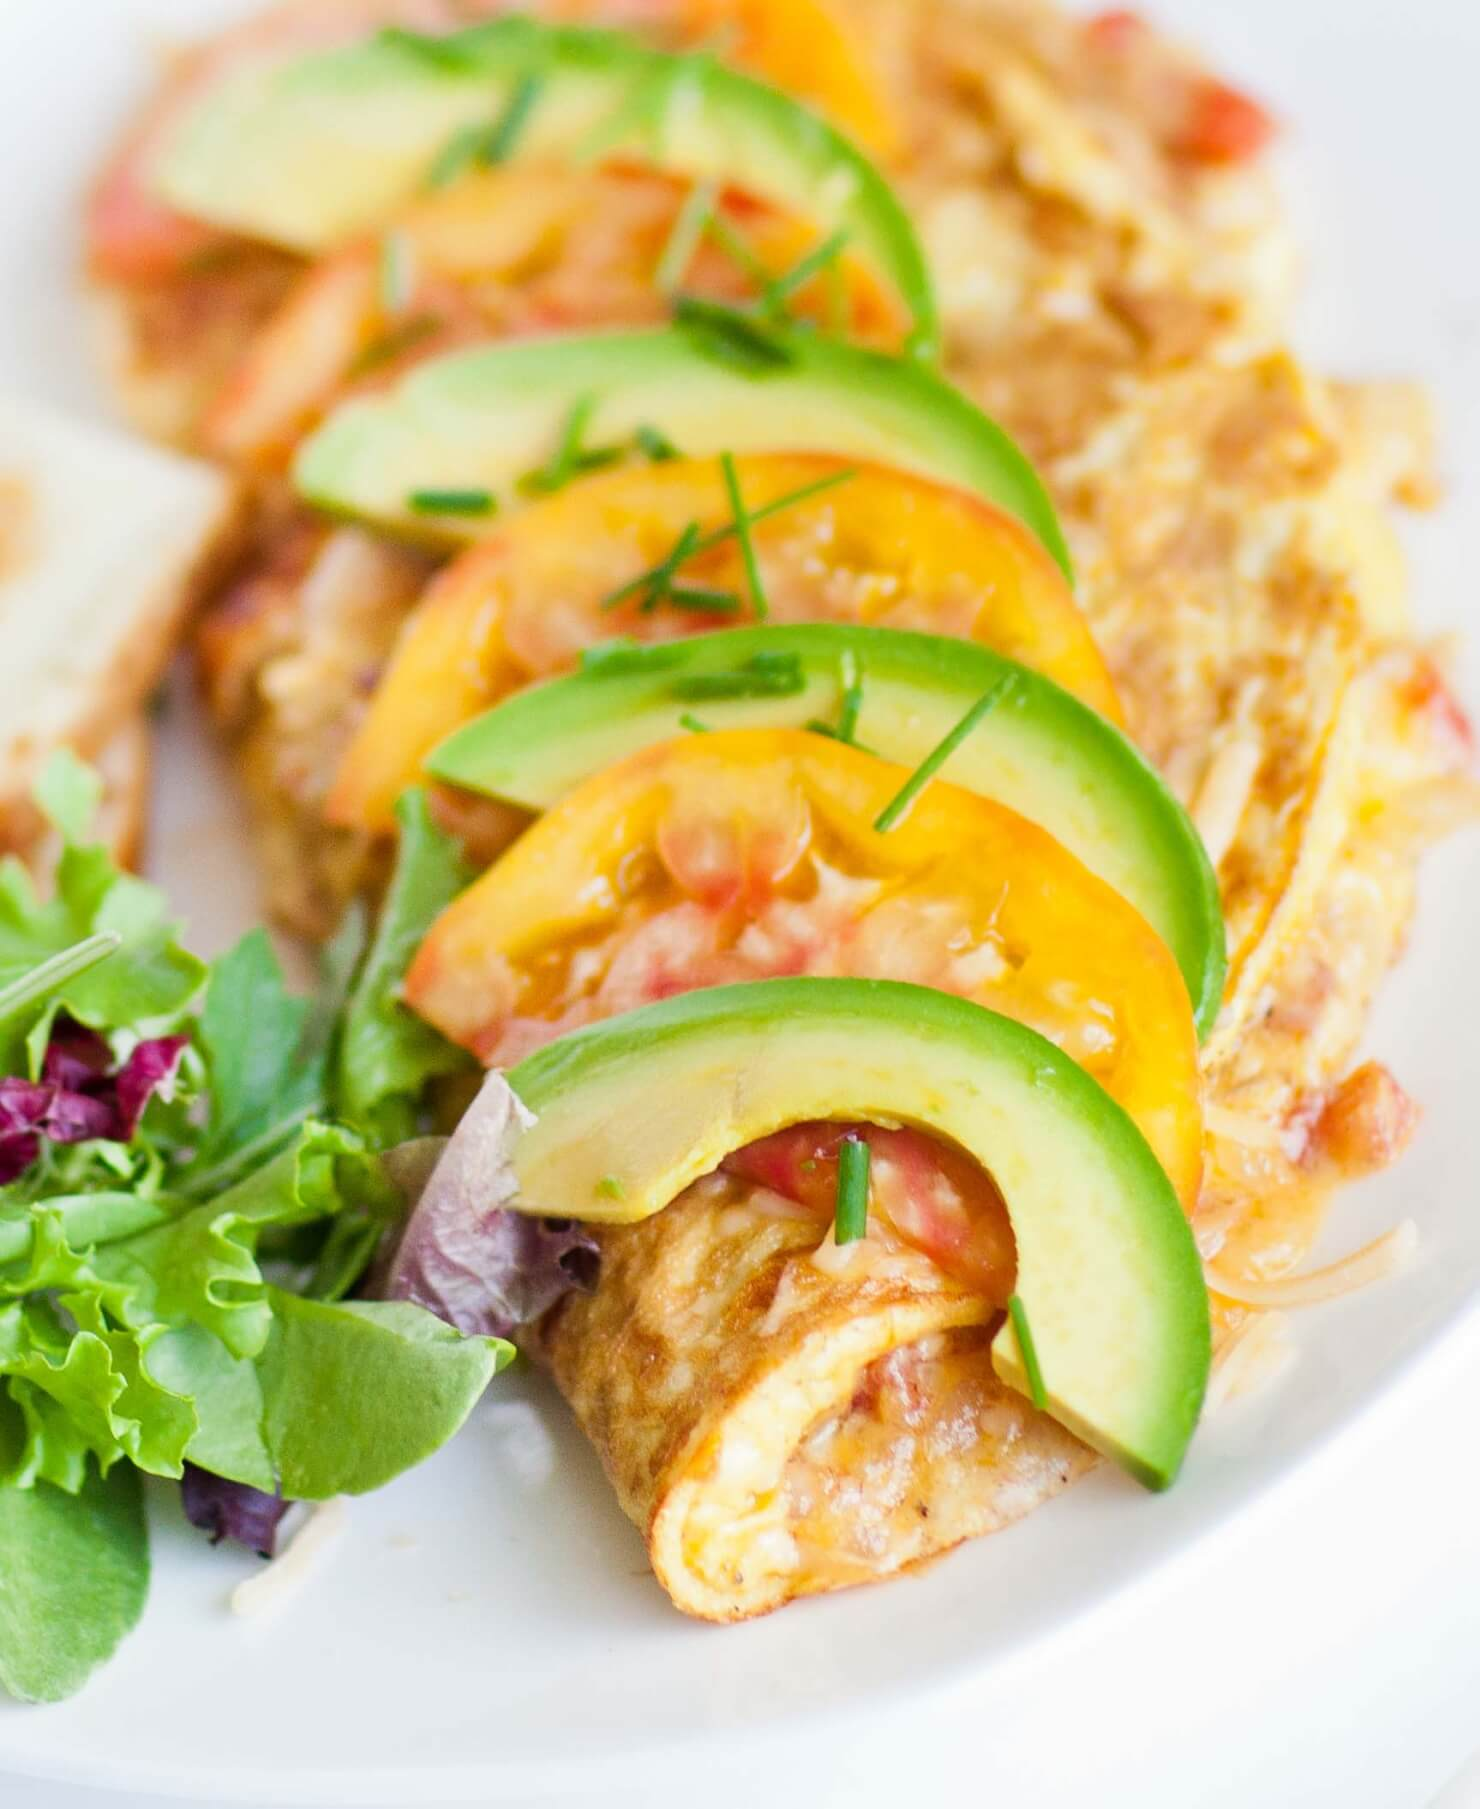 cheese omelette with avocado